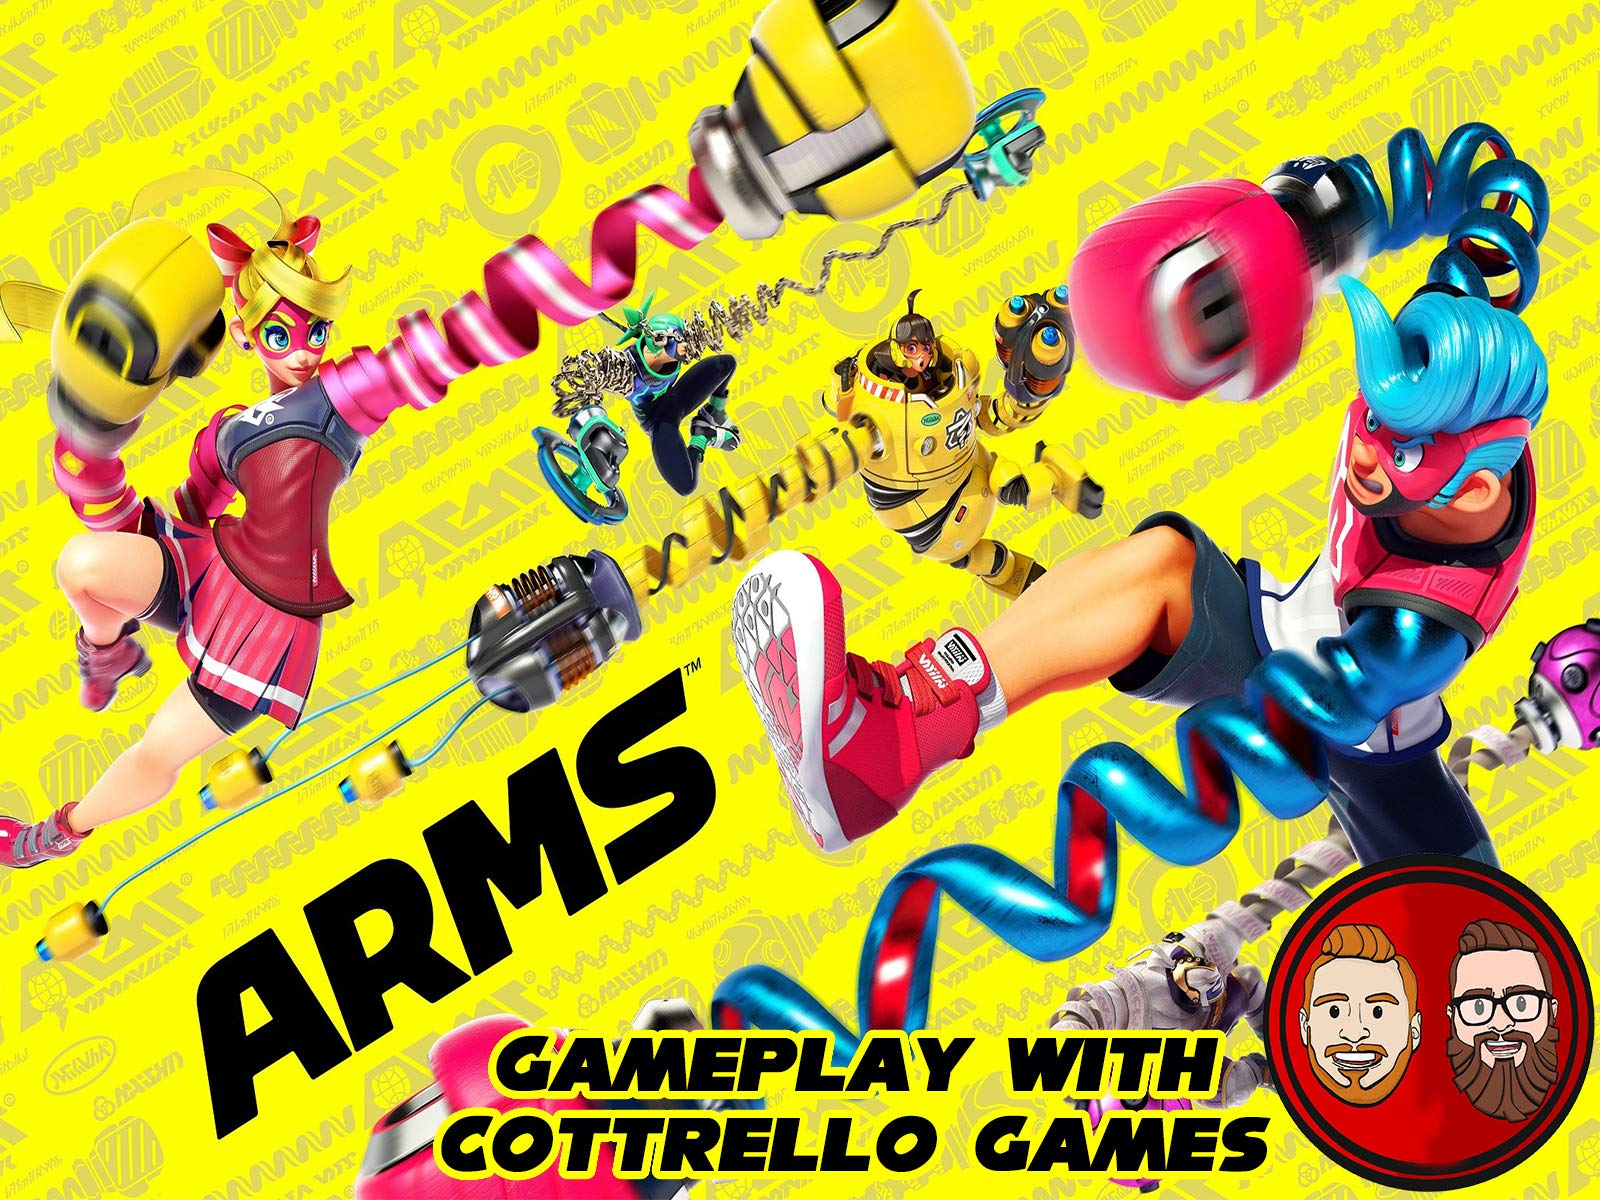 ARMS Gameplay with Cottrello Games